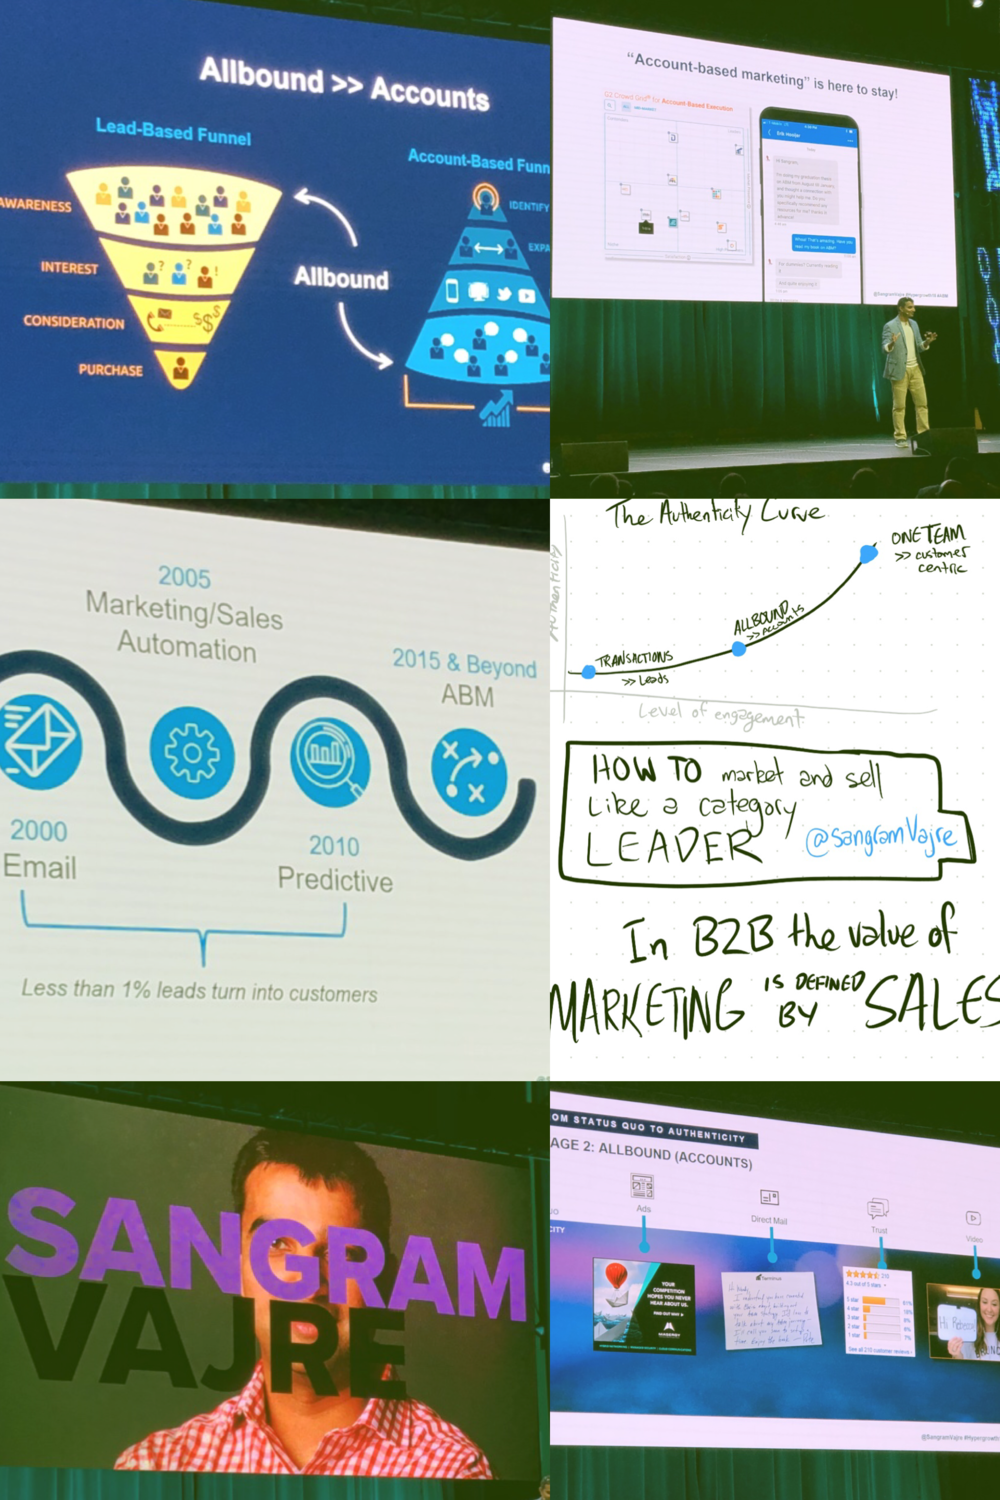 #6 - 'Account based marketing' is here to stay. - You familiar with ABM?You should be.Sangram Vajre had great presence and I was so busy taking photos of his slides I barely got any sketch notes taken 😬